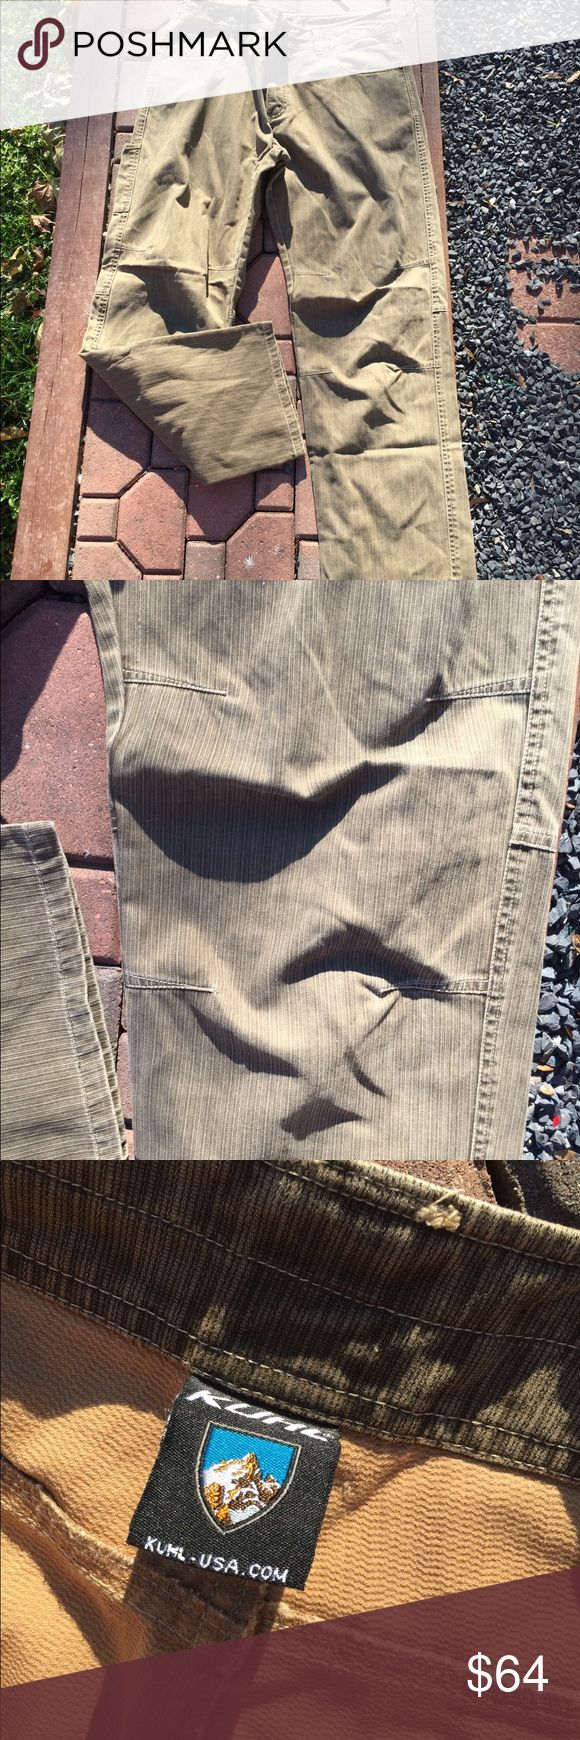 Kühl Mens Textured Patina Pants Size 36x32 Super gently preowned. Size 36x32. Be sure to view the other items in our closet. We offer  women's, Mens and kids items in a variety of sizes. Bundle and save!! We love reasonable offers!! Thank you for viewing our item!! Kuhl Pants